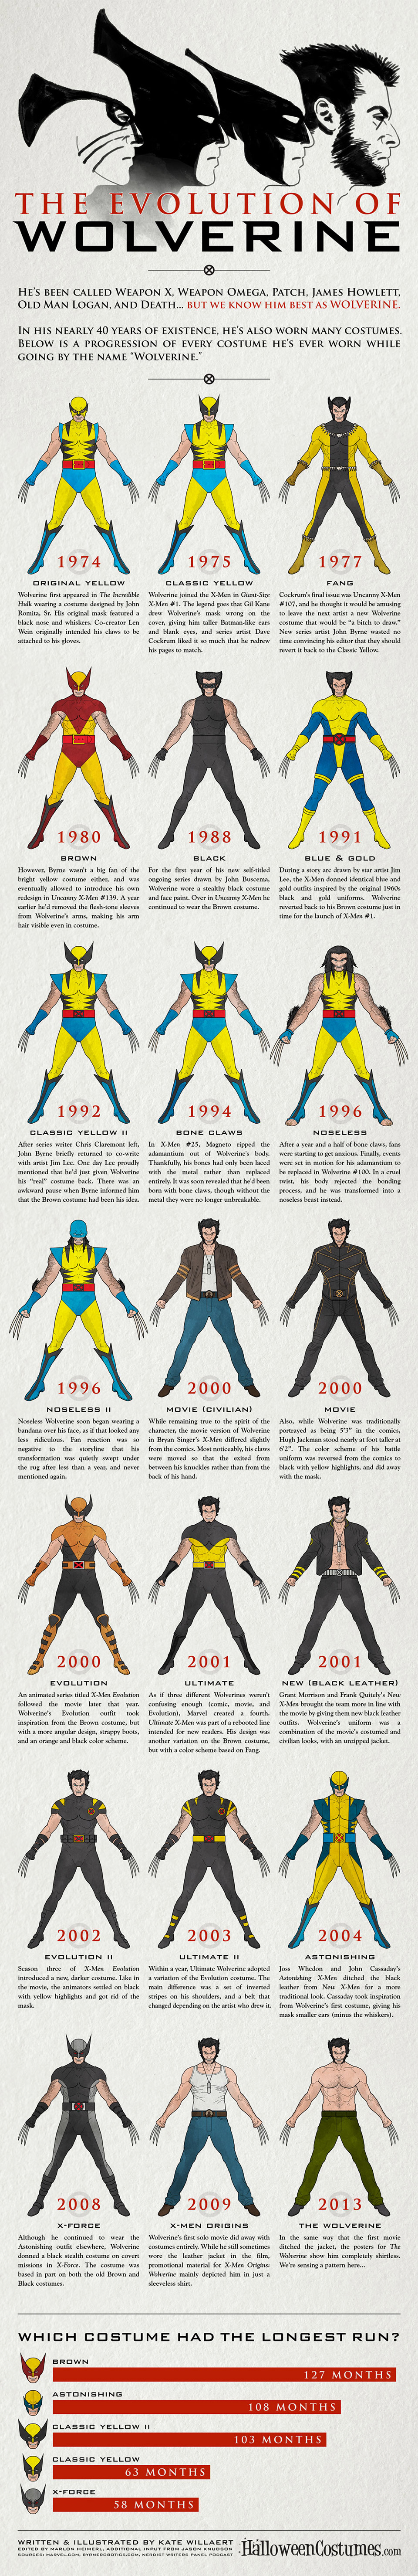 The Evolution of Wolverine's Costumes